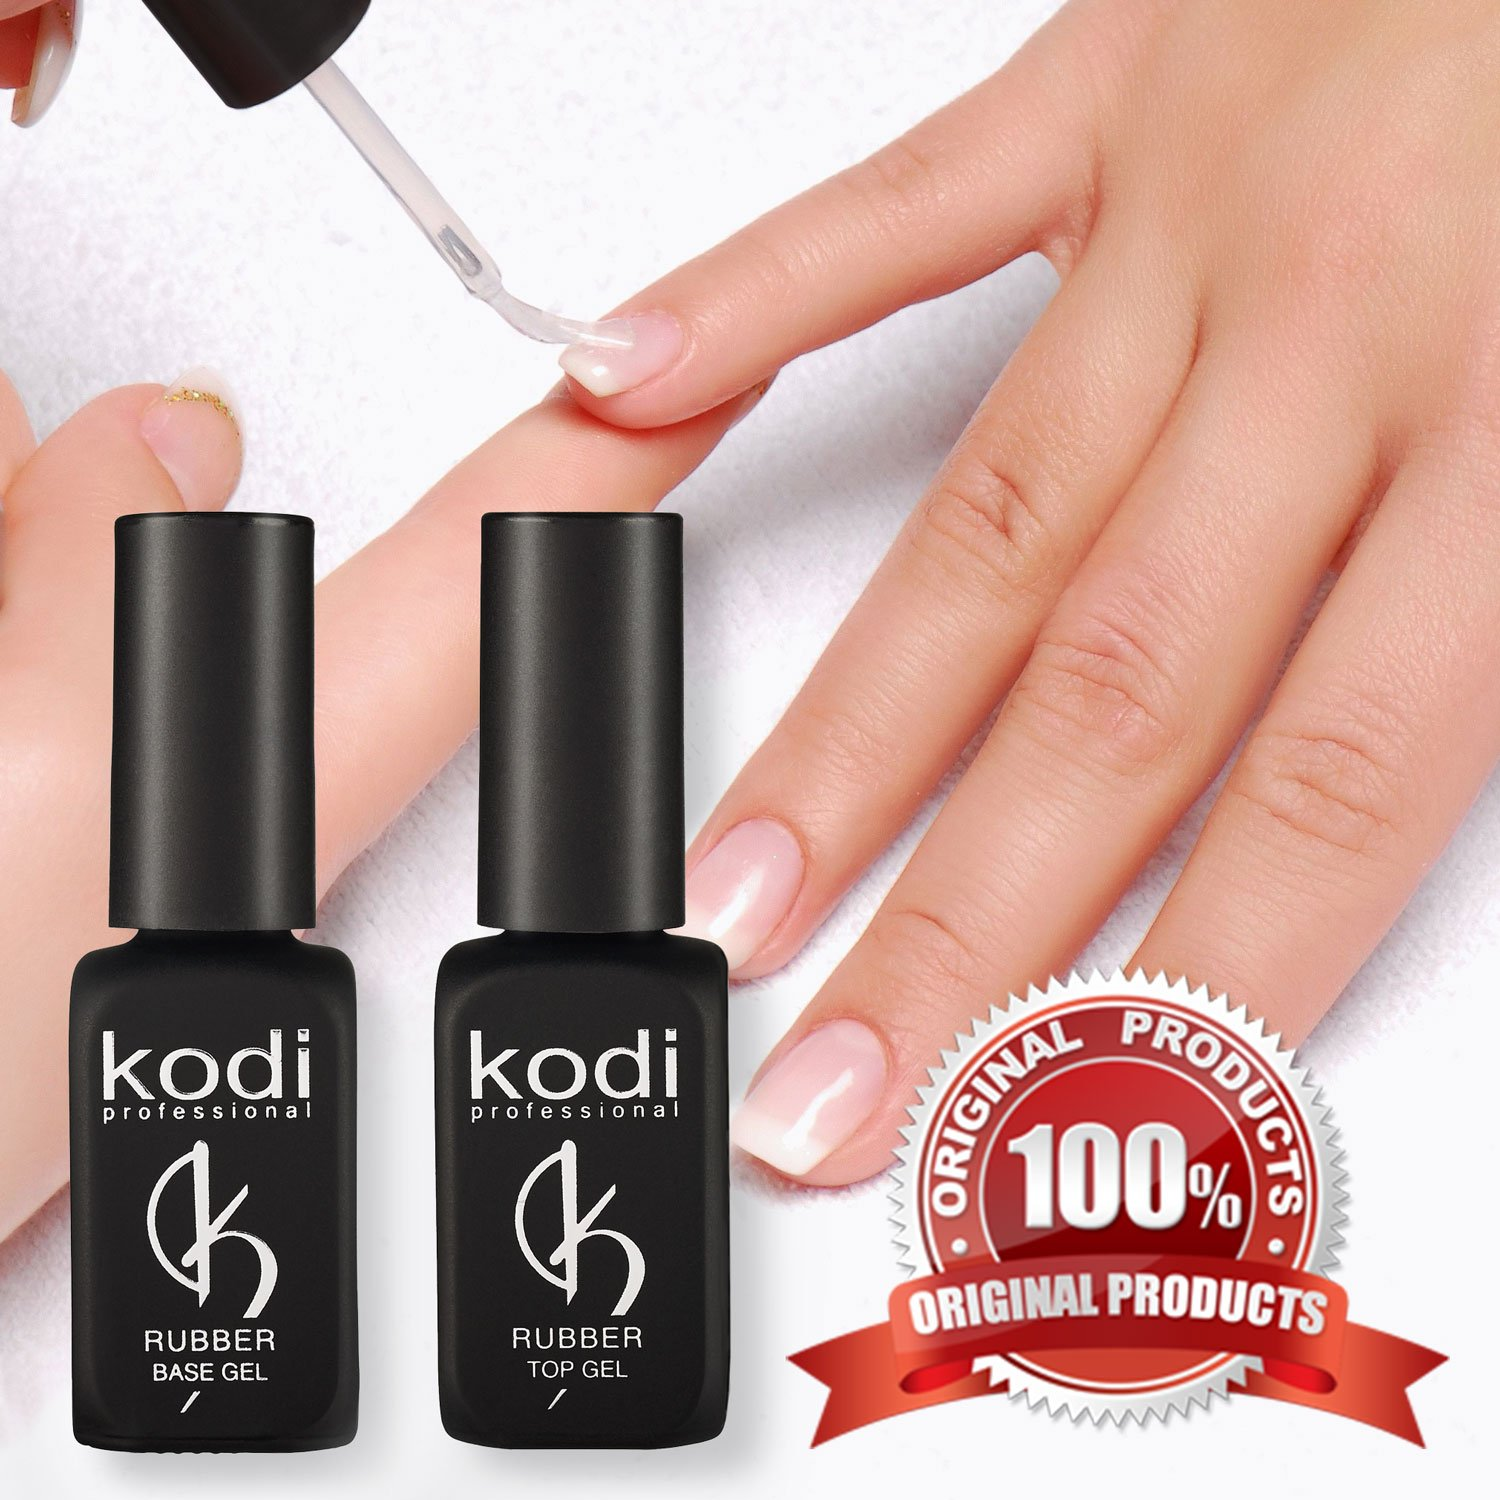 Amazon.com: Professional Rubber Base Gel By Kodi | Soak Off, Polish ...